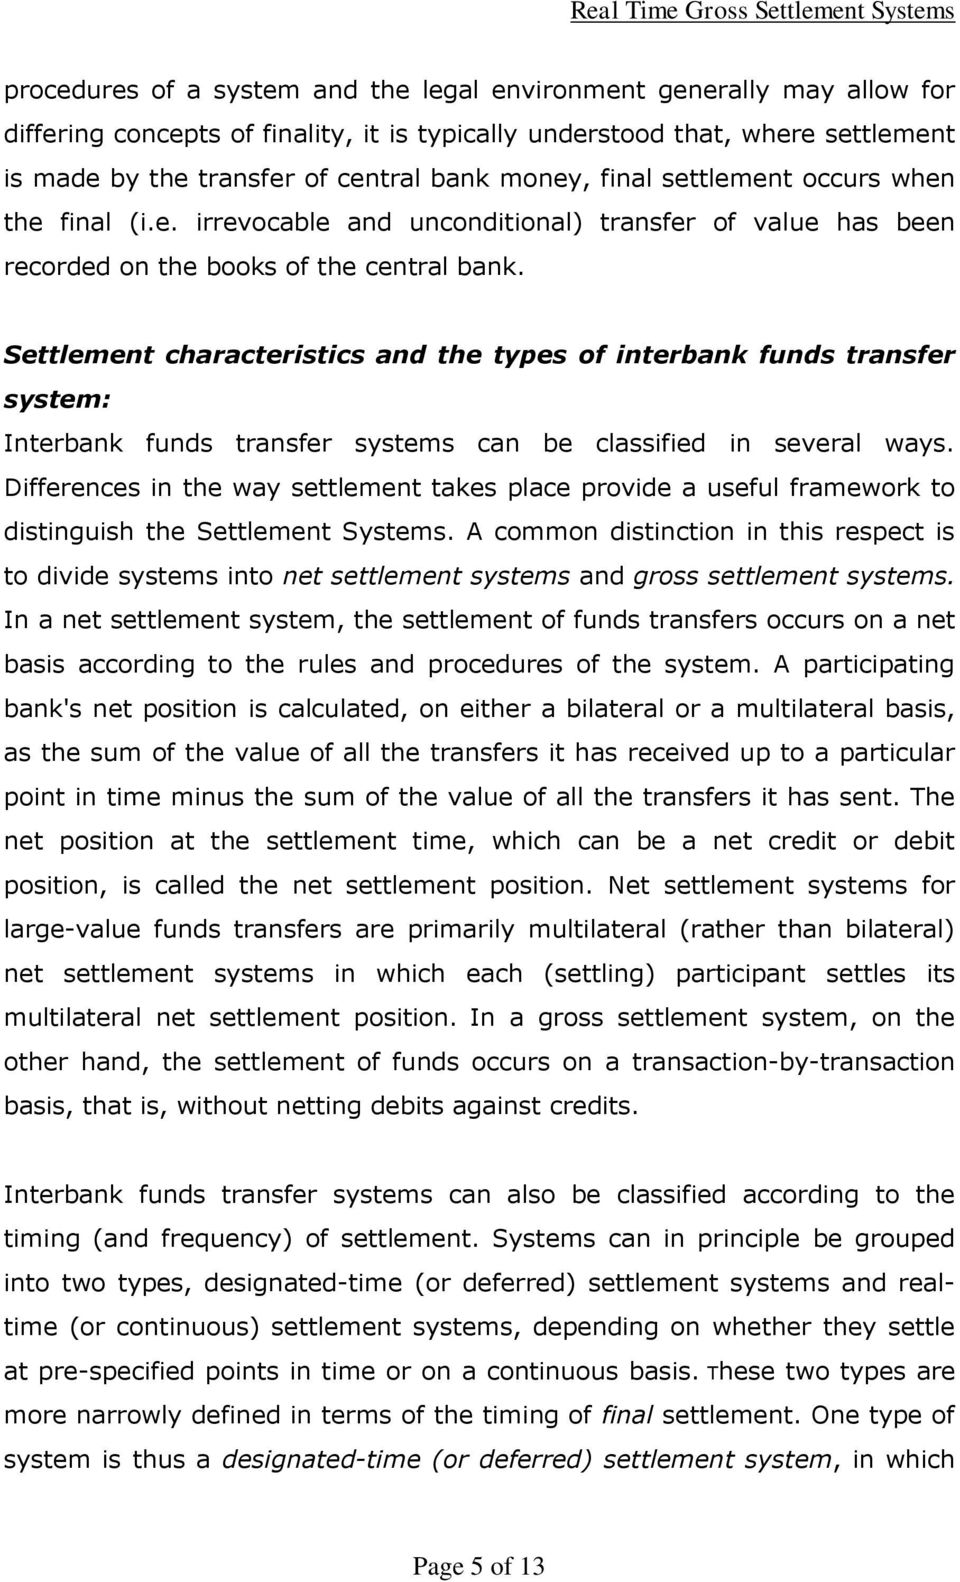 Settlement characteristics and the types of interbank funds transfer system: Interbank funds transfer systems can be classified in several ways.